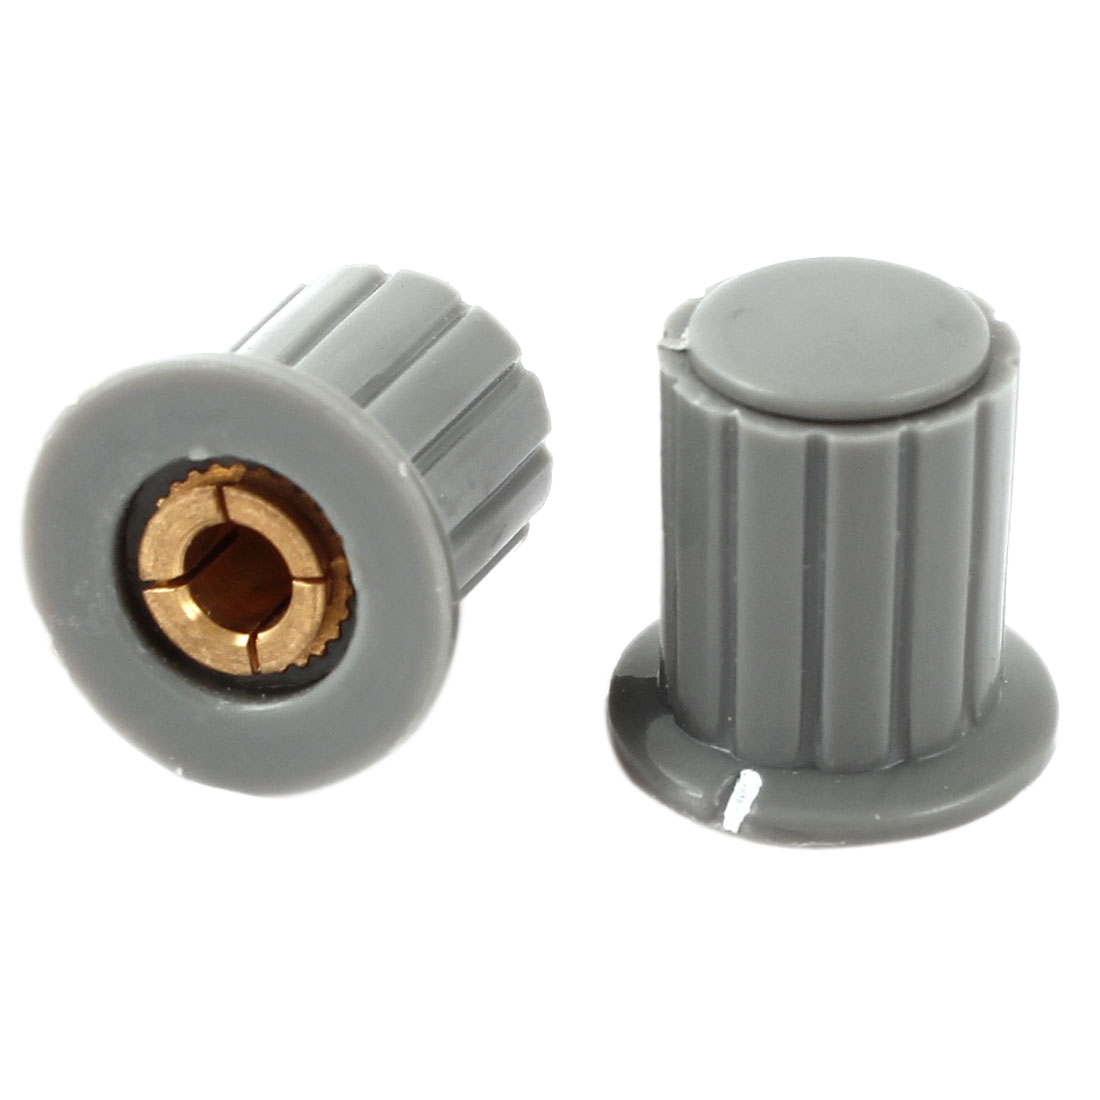 2 Pcs 16x16mm 4mm Shaft Dia Volume Control Plastic Potentiometer Knobs Caps